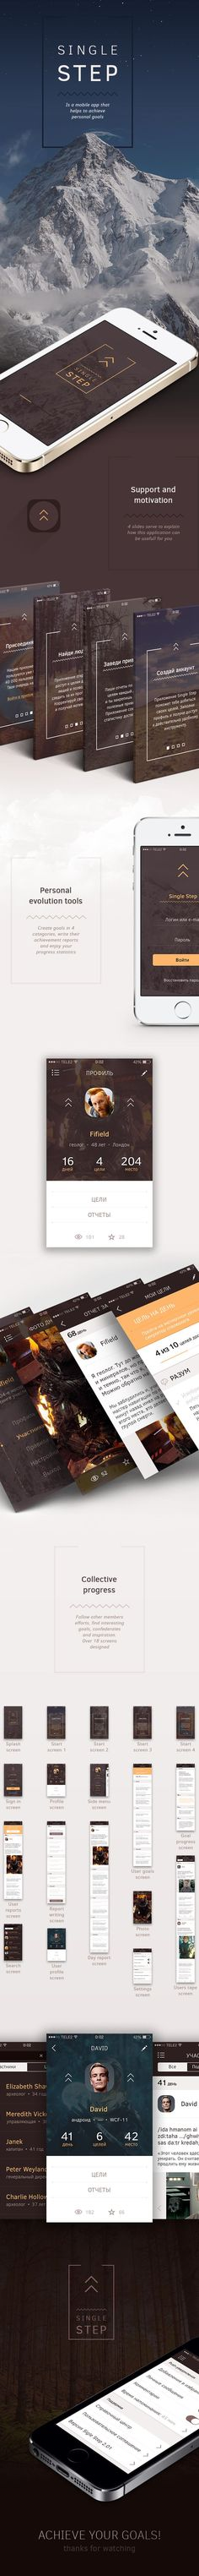 Single Step app by Pavel Sikorsky